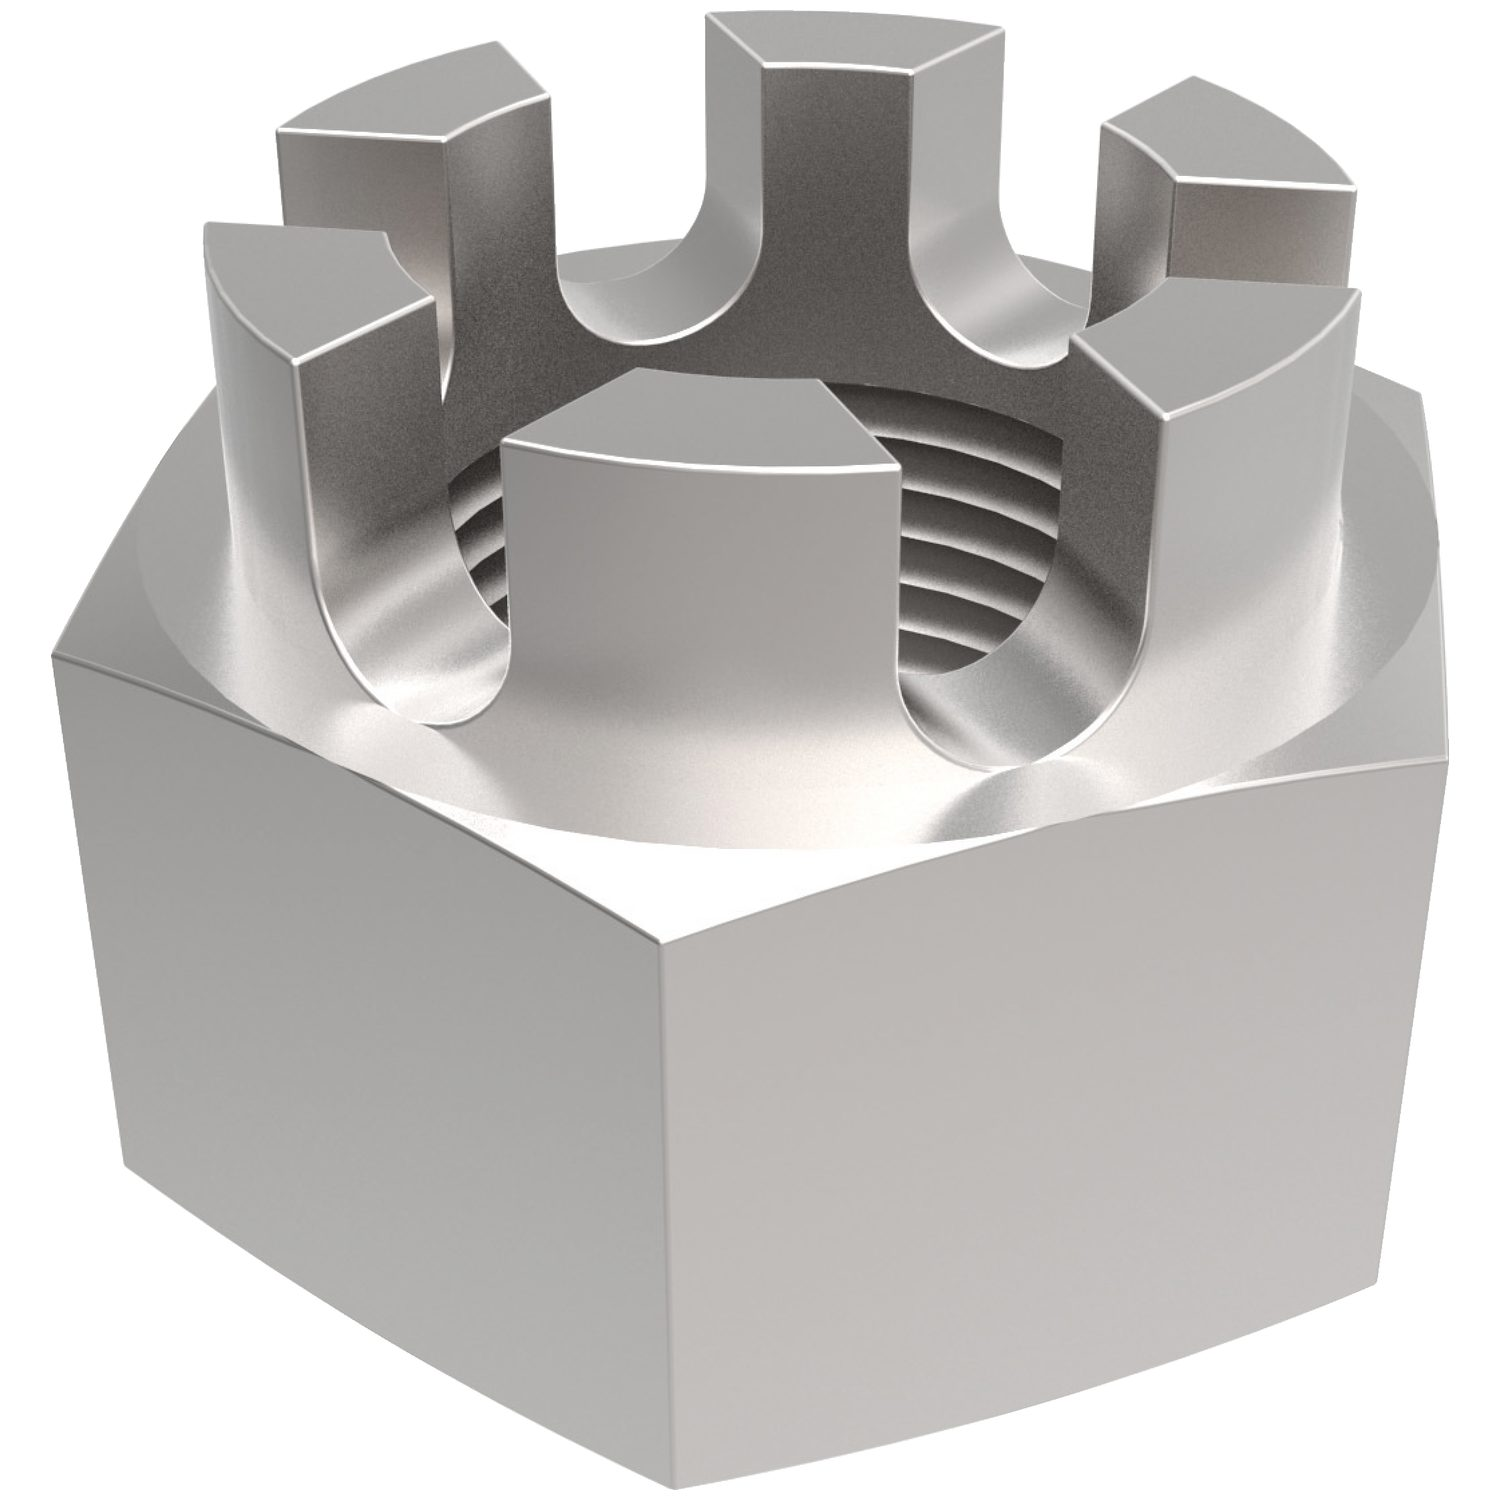 Hexagon Castle Nuts Hexagon castle nuts made from A2 stainless steel. Manufactured to DIN 935. Sizes range from M5 to M36.